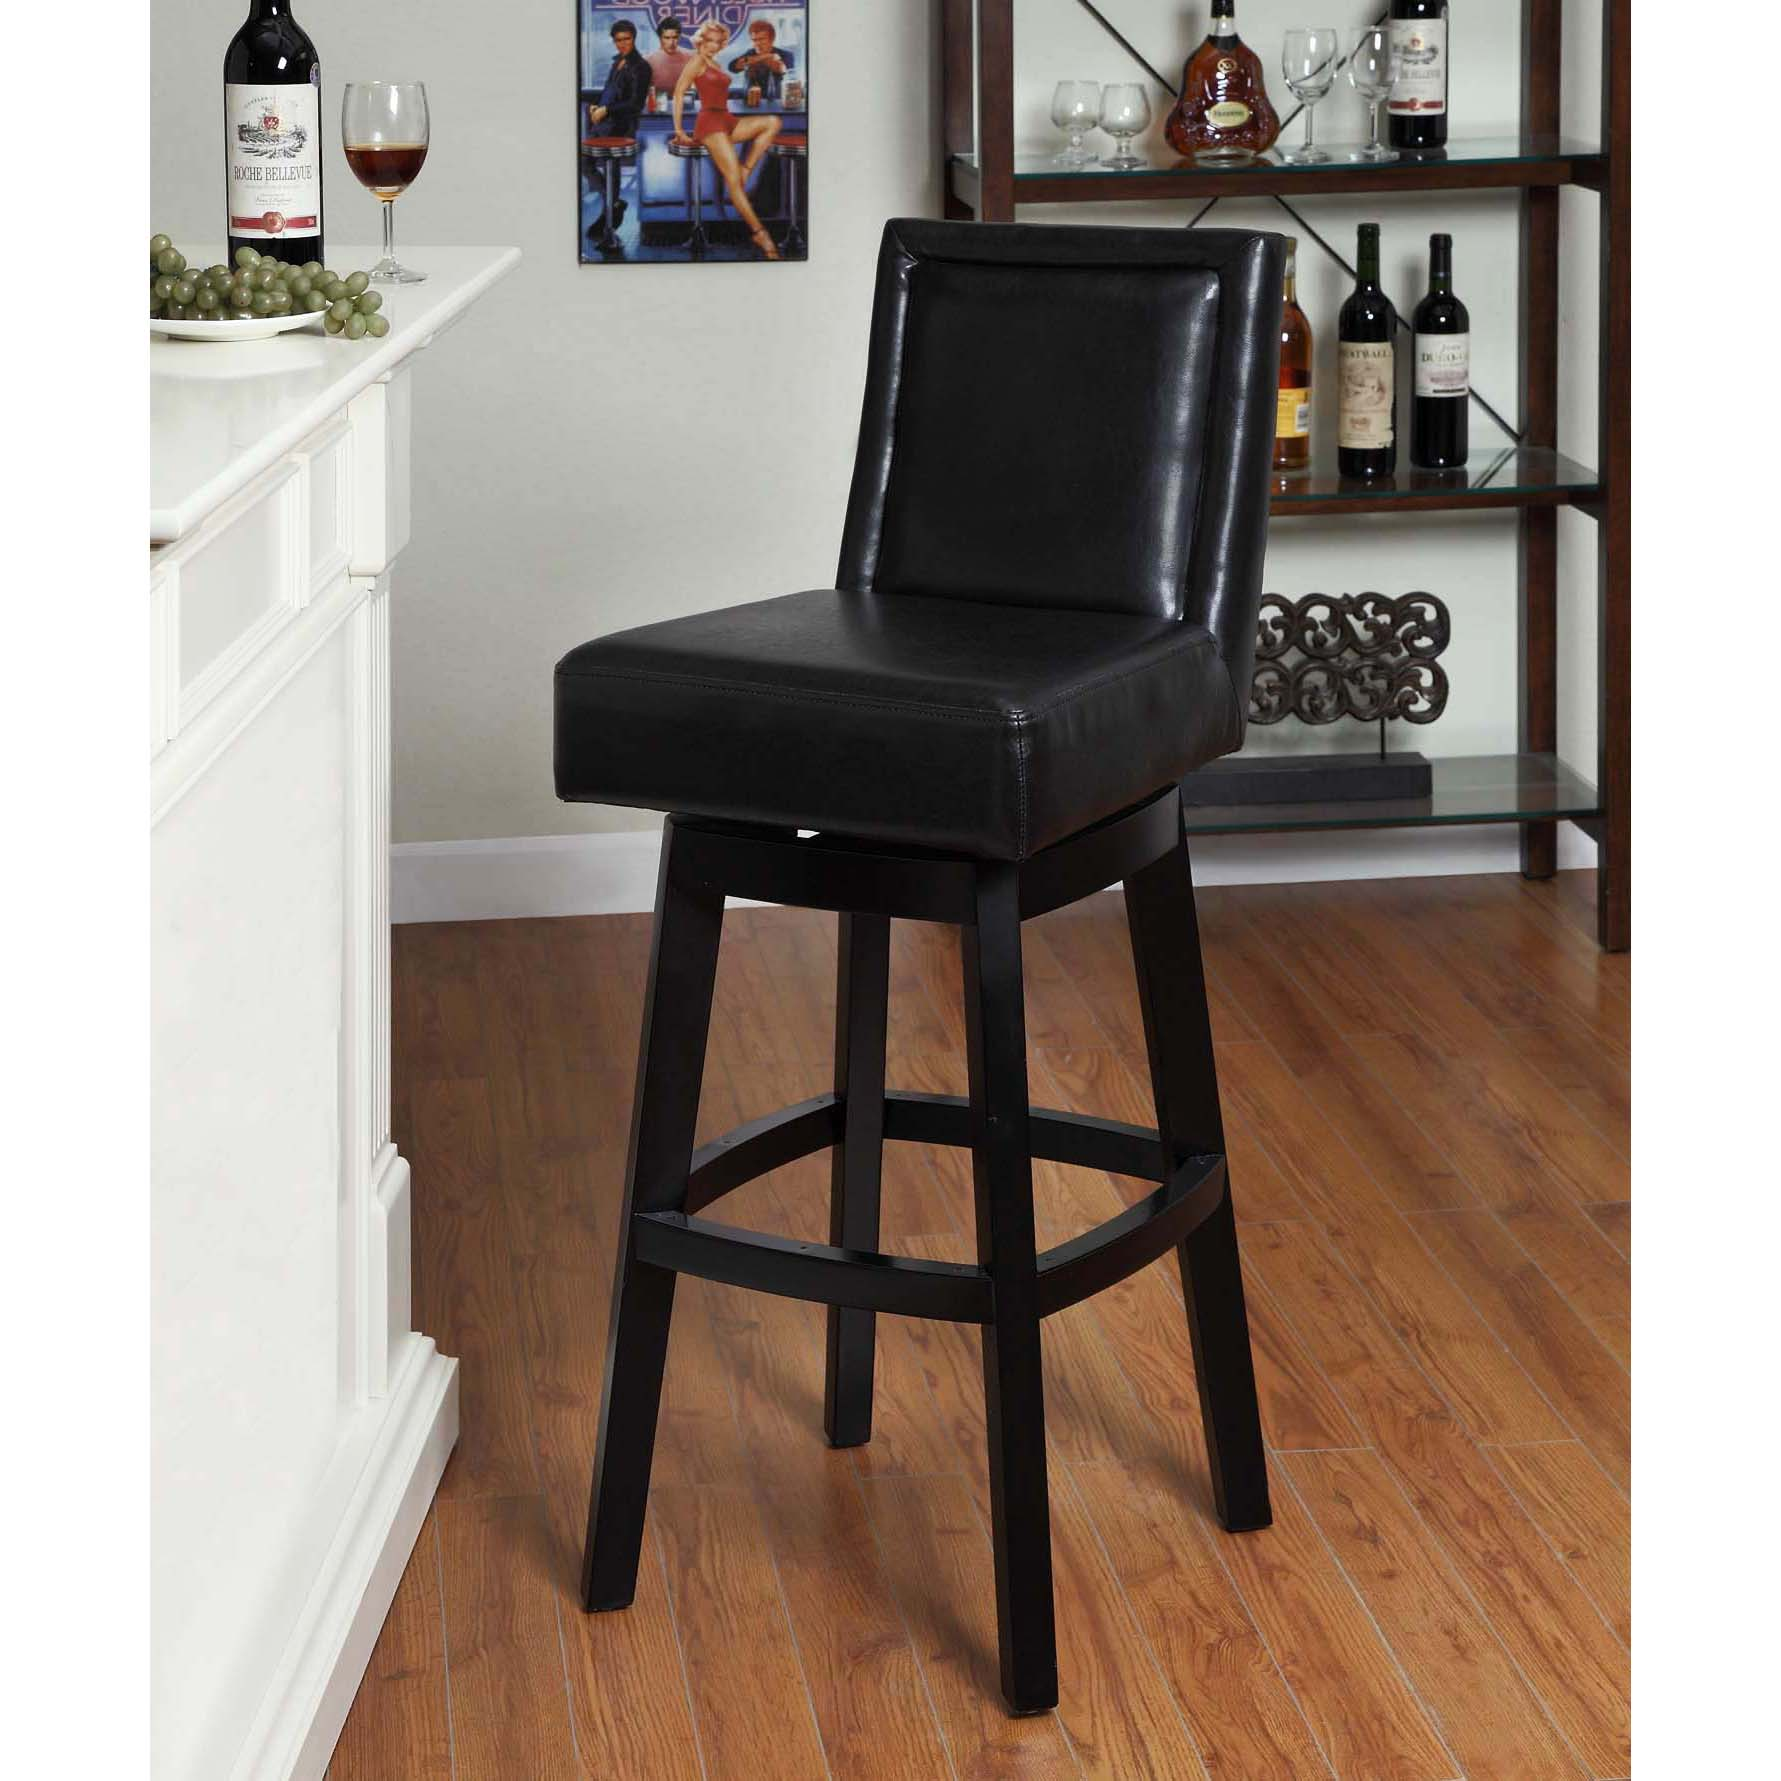 Fantastic leather bar stools for home furniture with leather swivel bar stools